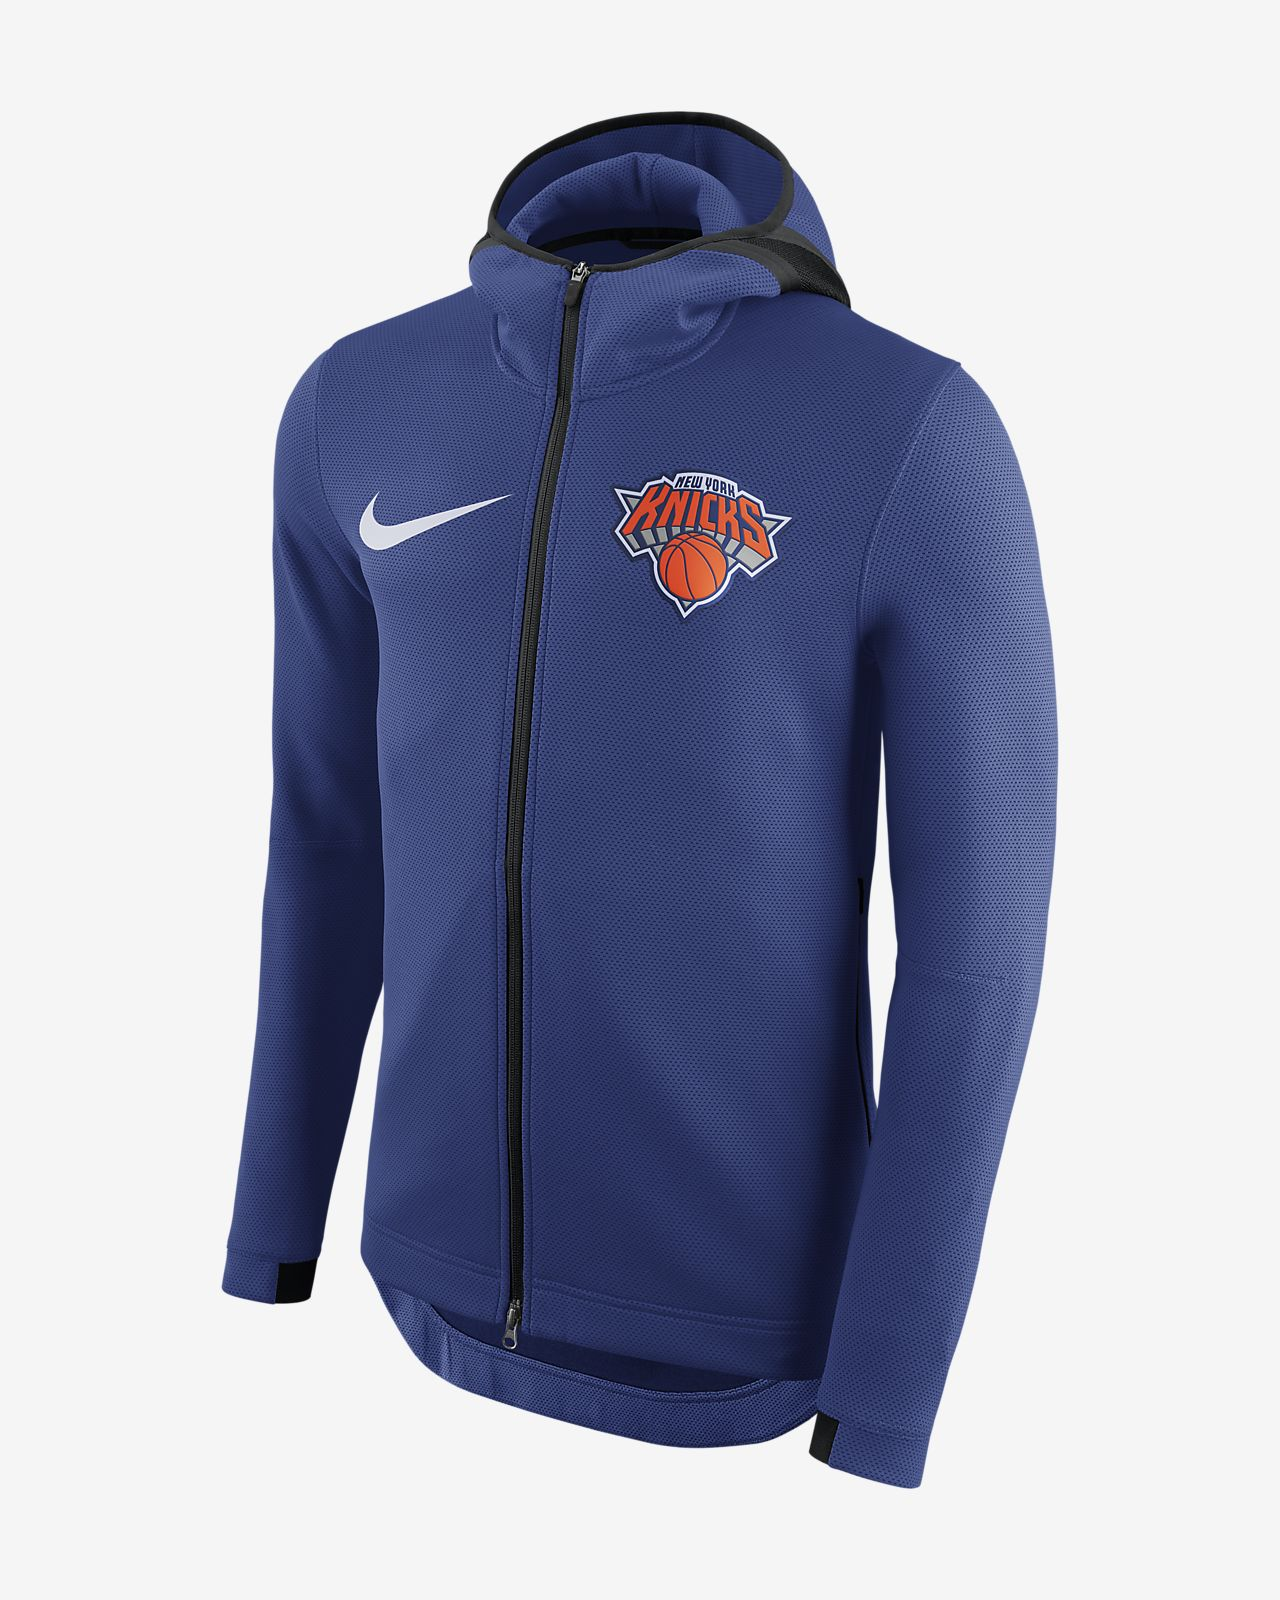 reputable site 9ab05 7e38c New York Knicks Nike Therma Flex Showtime Men's NBA Hoodie